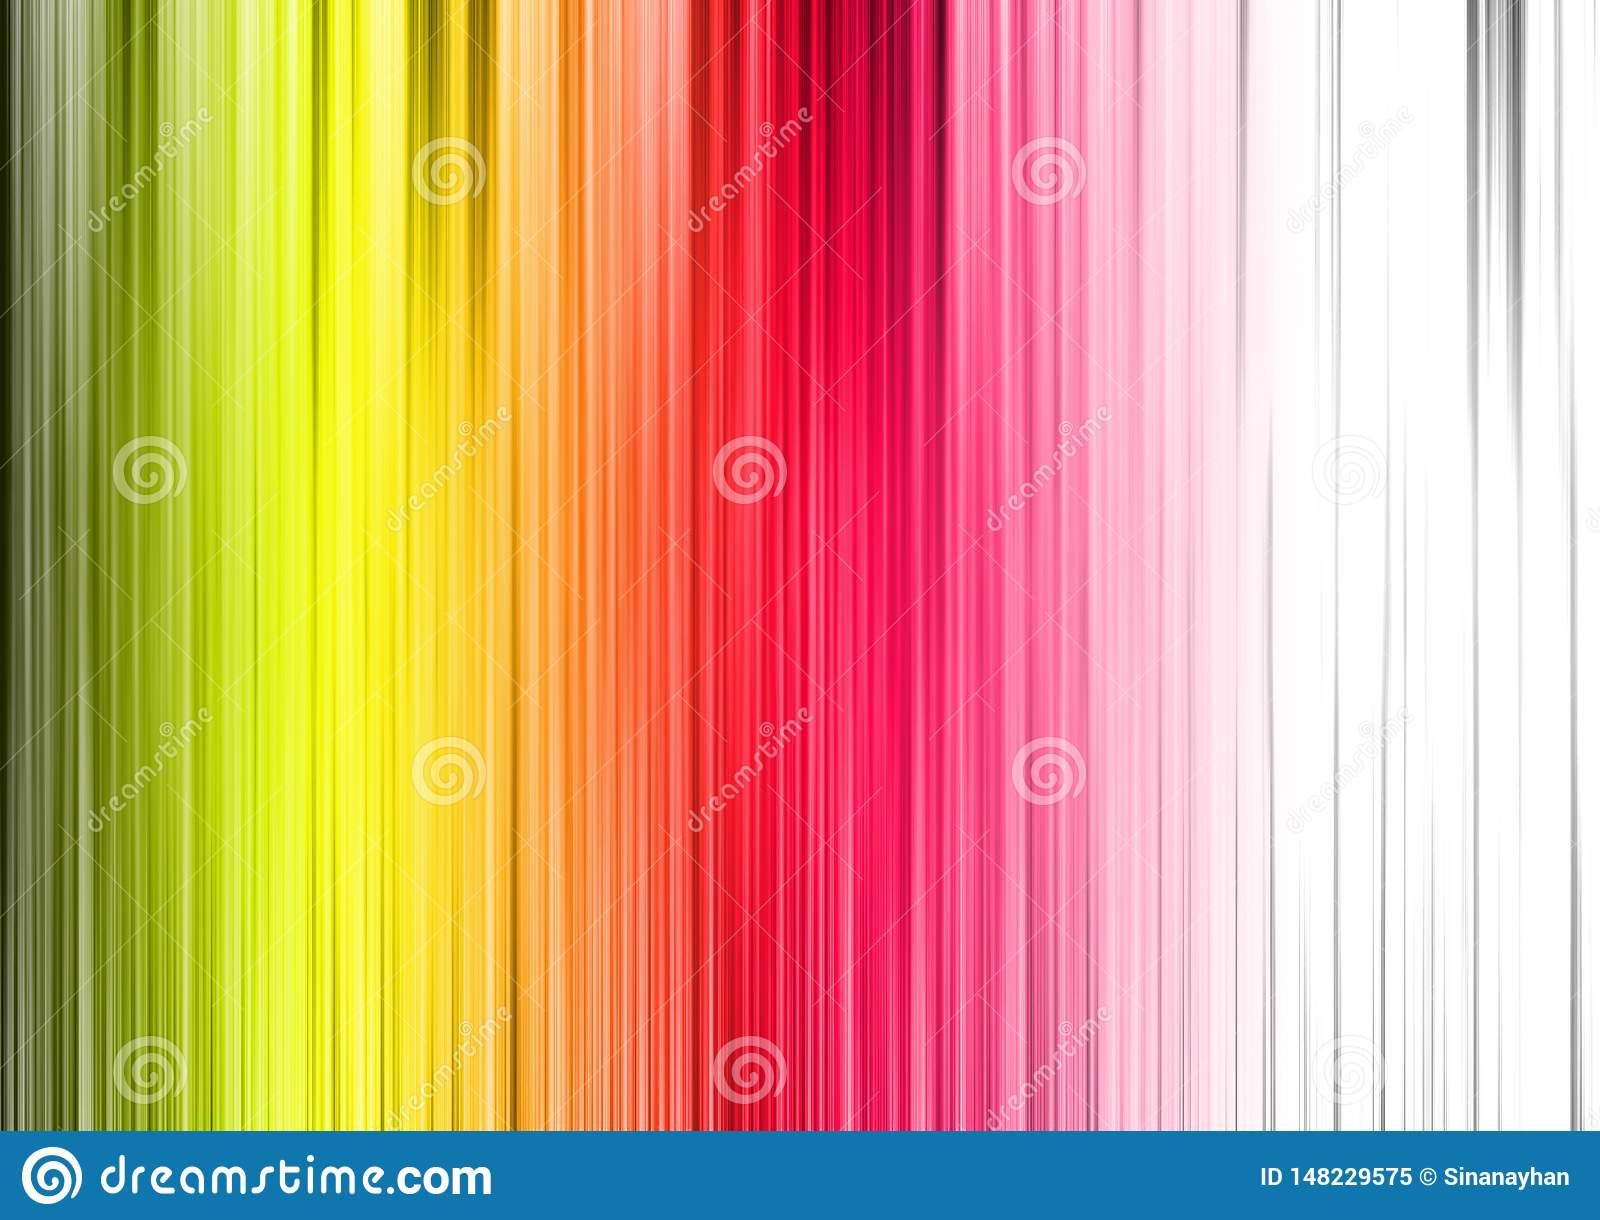 Colorful background pattern vertical line